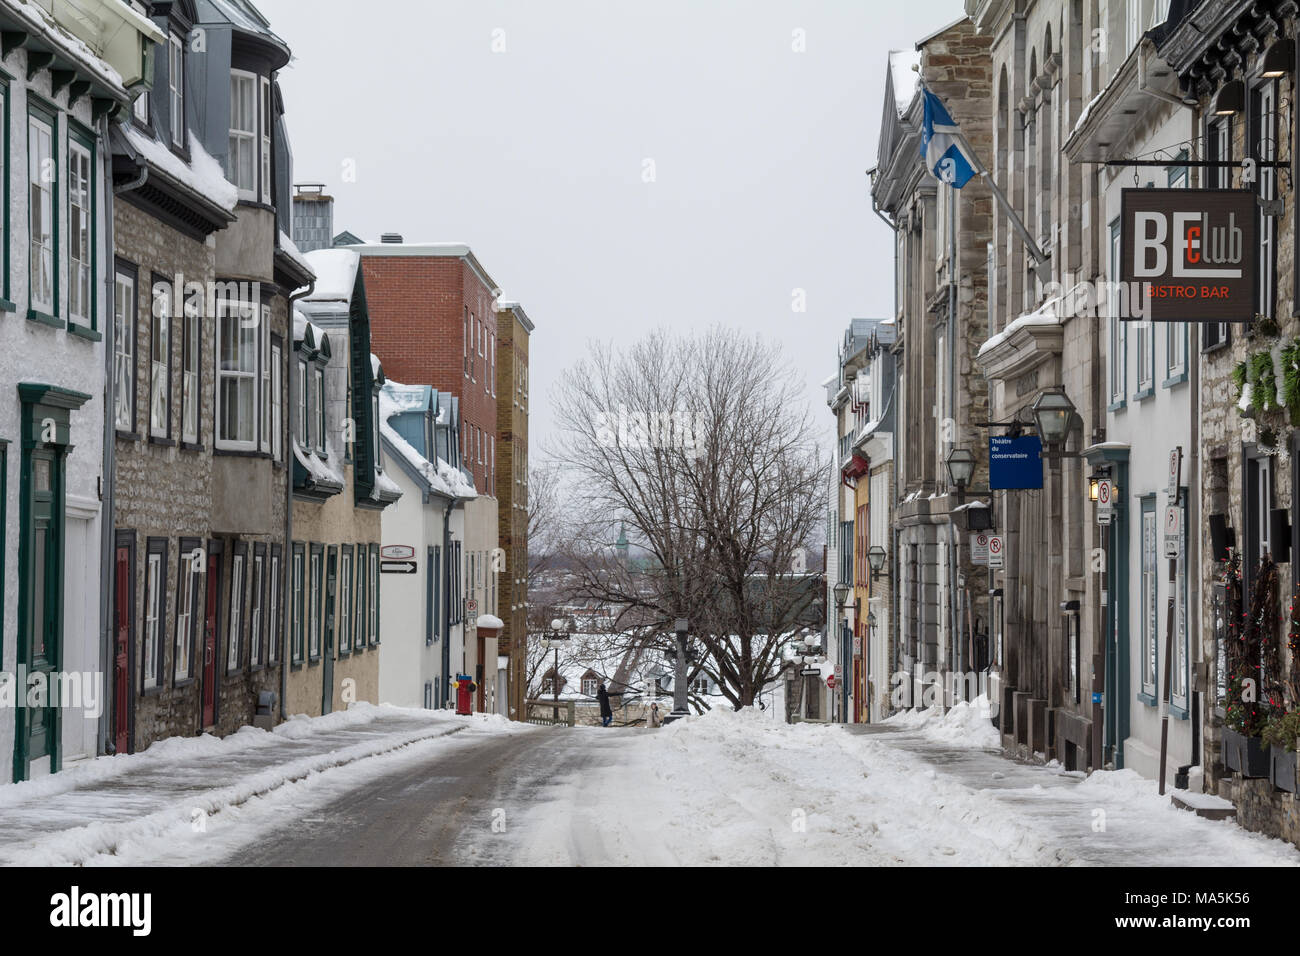 QUEBEC, CANADA - DECEMBER 27, 2016: Street of the Old Town of Quebec City covered in snow. The Vieux Quebec is one of the oldest districts of North Am - Stock Image